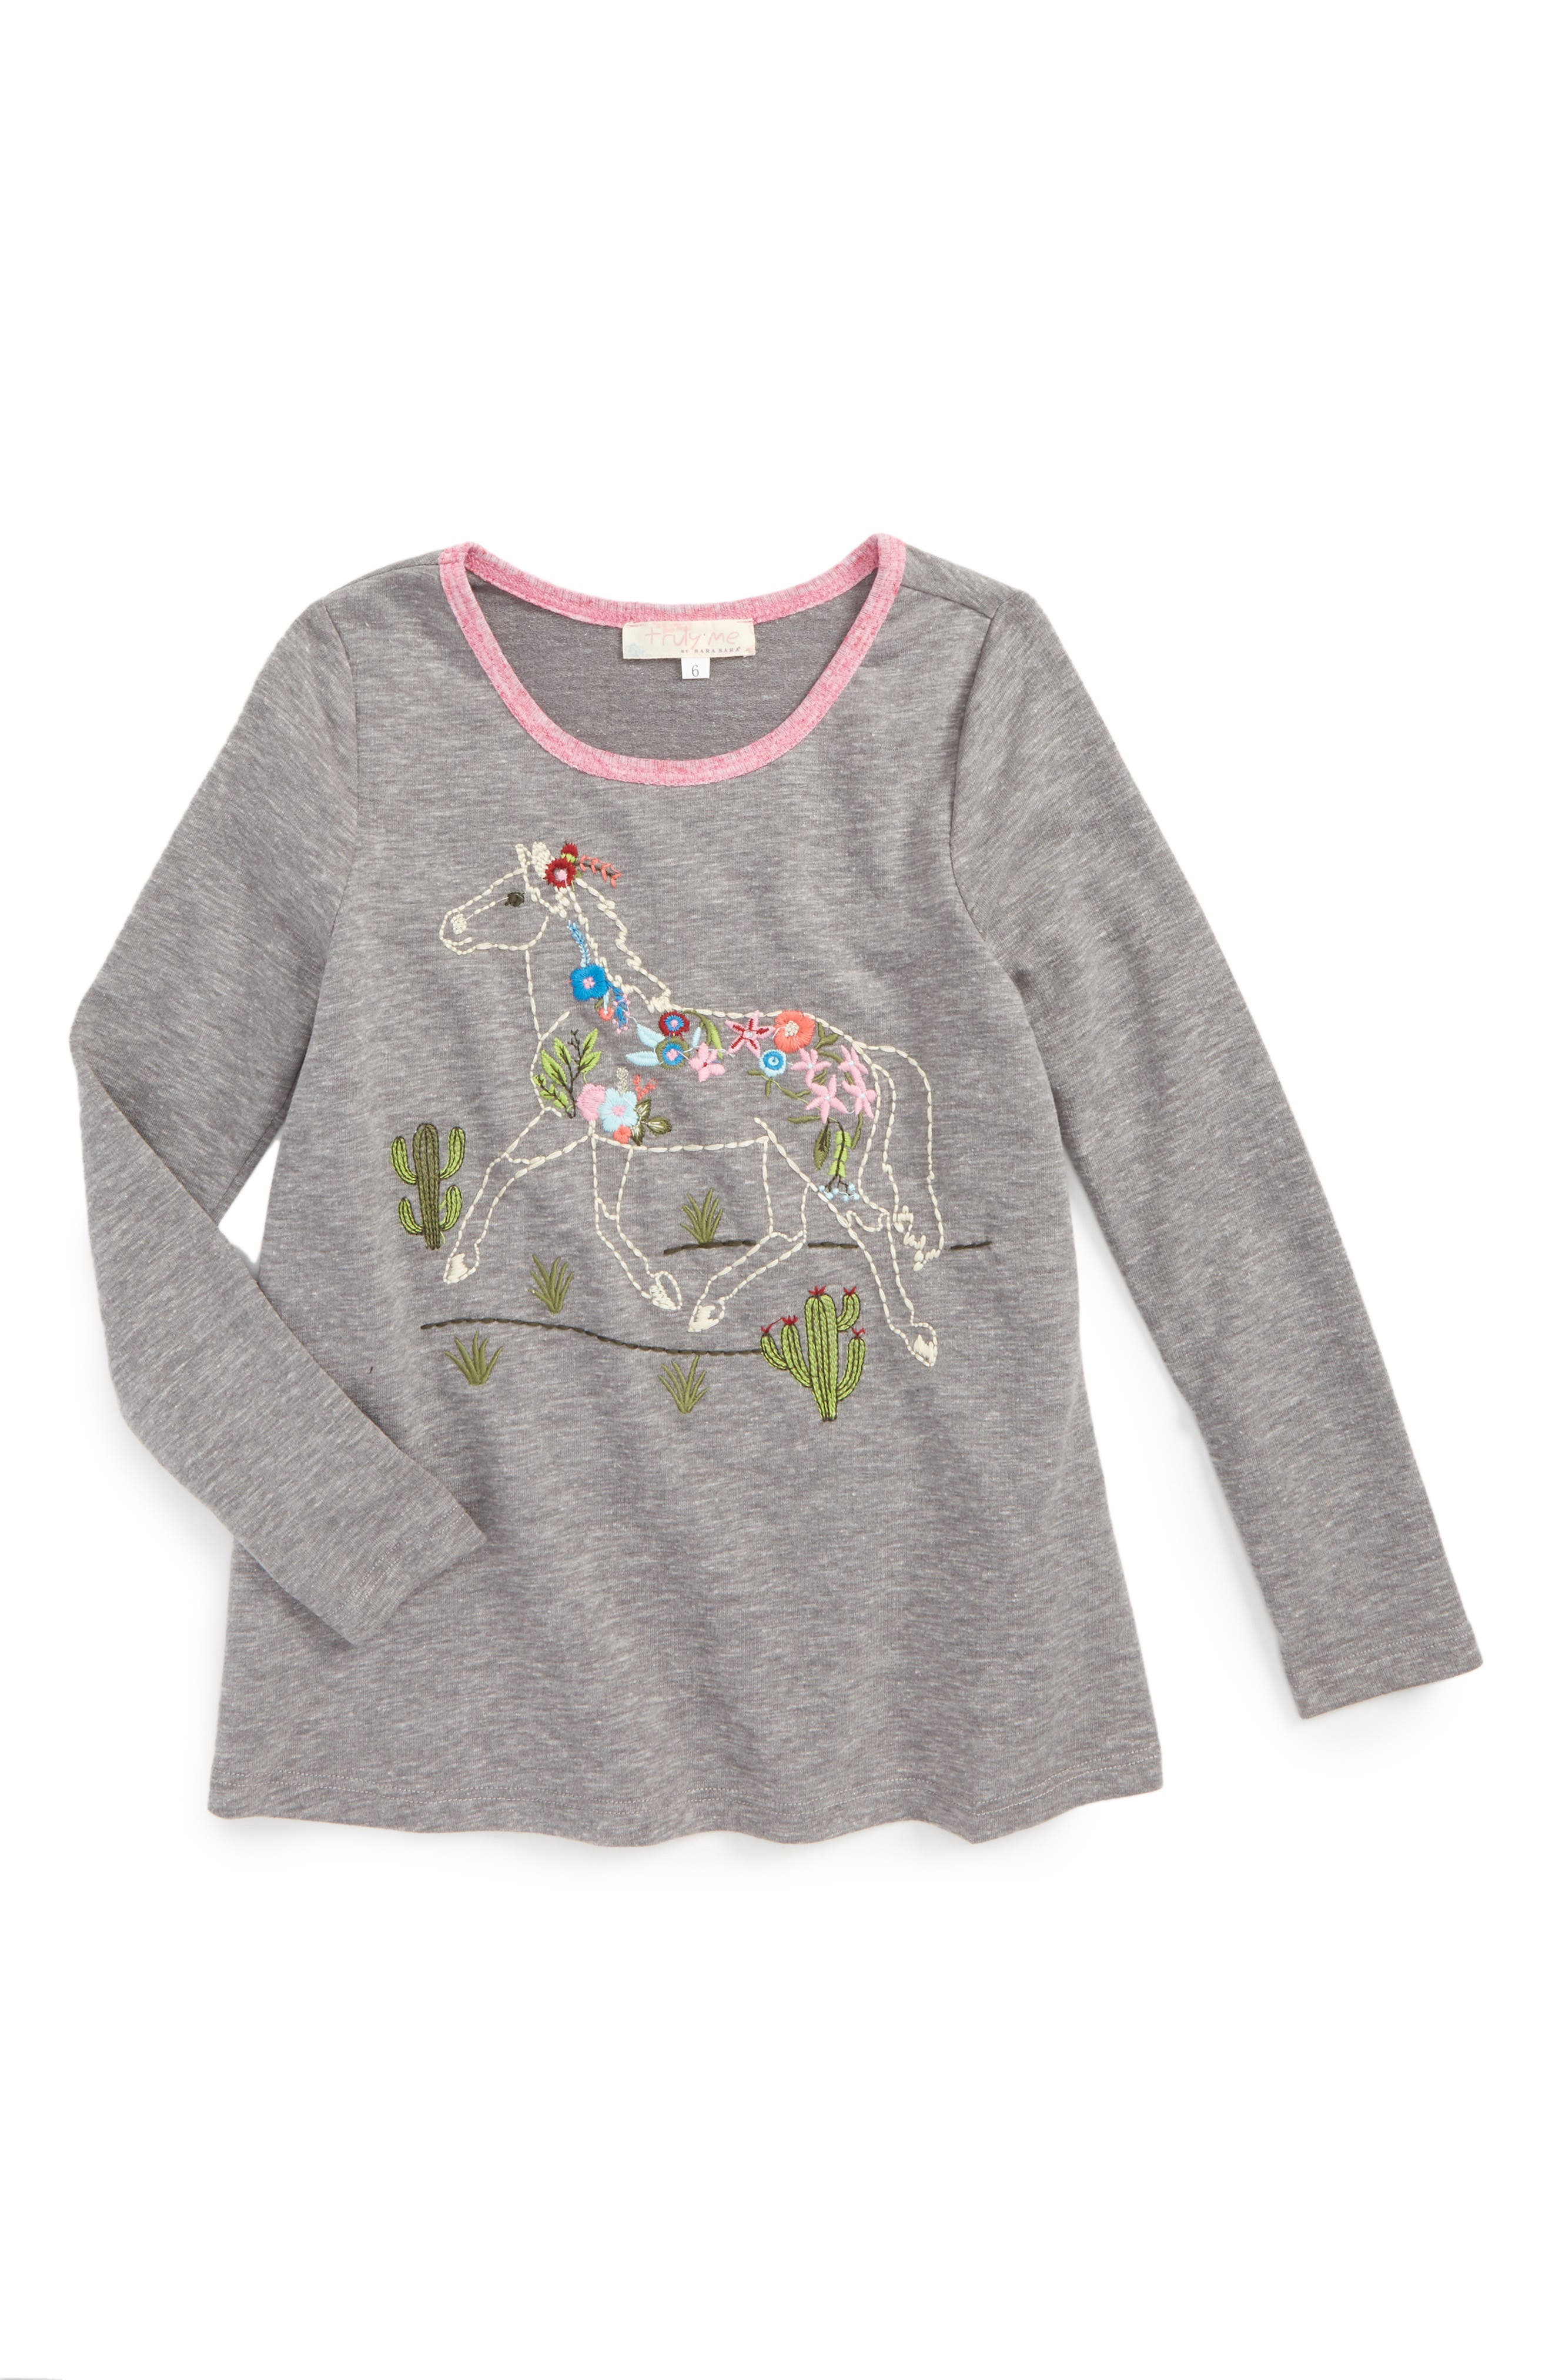 Truly Me Embroidered Horse Tee (Toddler Girls & Little Girls)